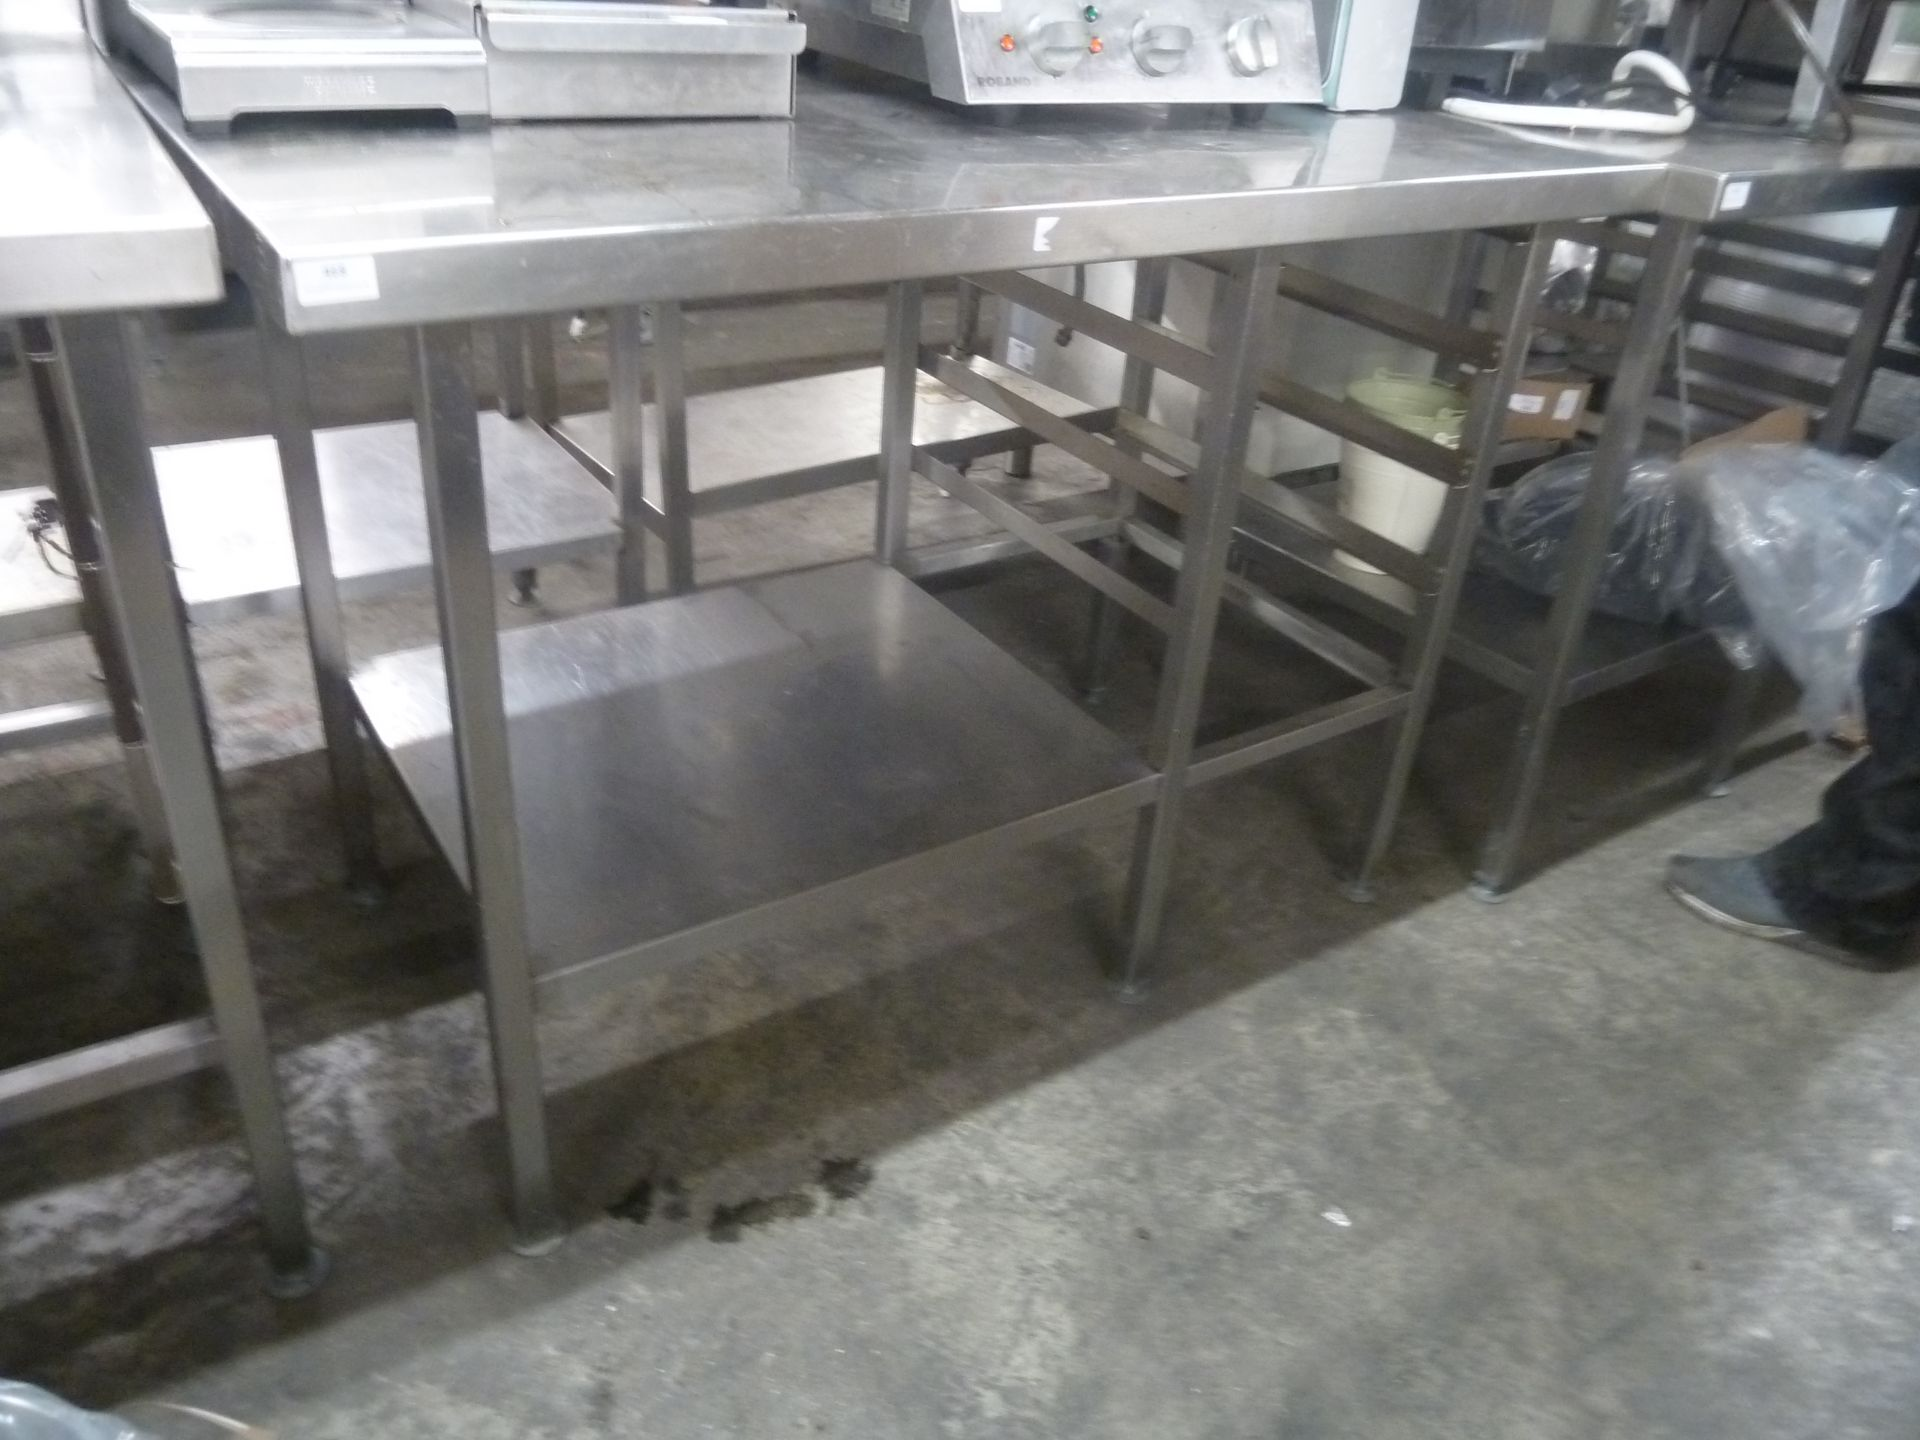 *S/S prep bench with up stand, racking and under shelf. 1200w x 700d x 880h